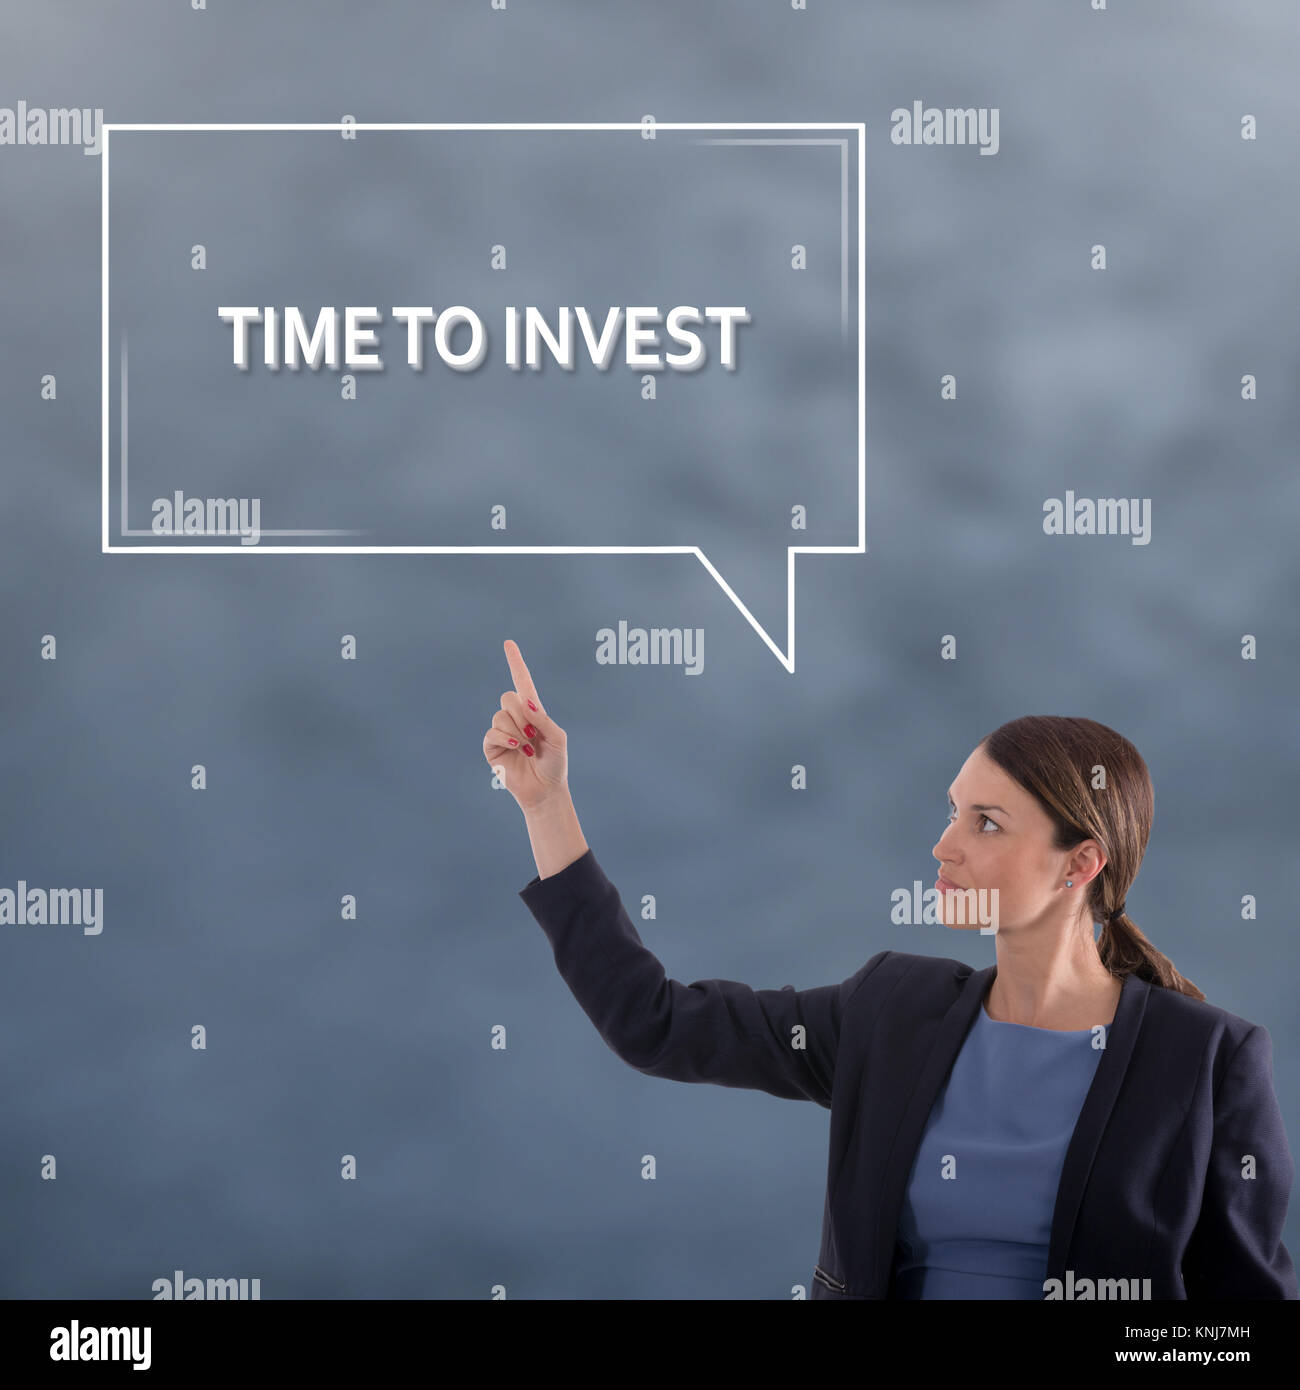 TIME TO INVEST Business Concept. Business Woman Graphic Concept - Stock Image